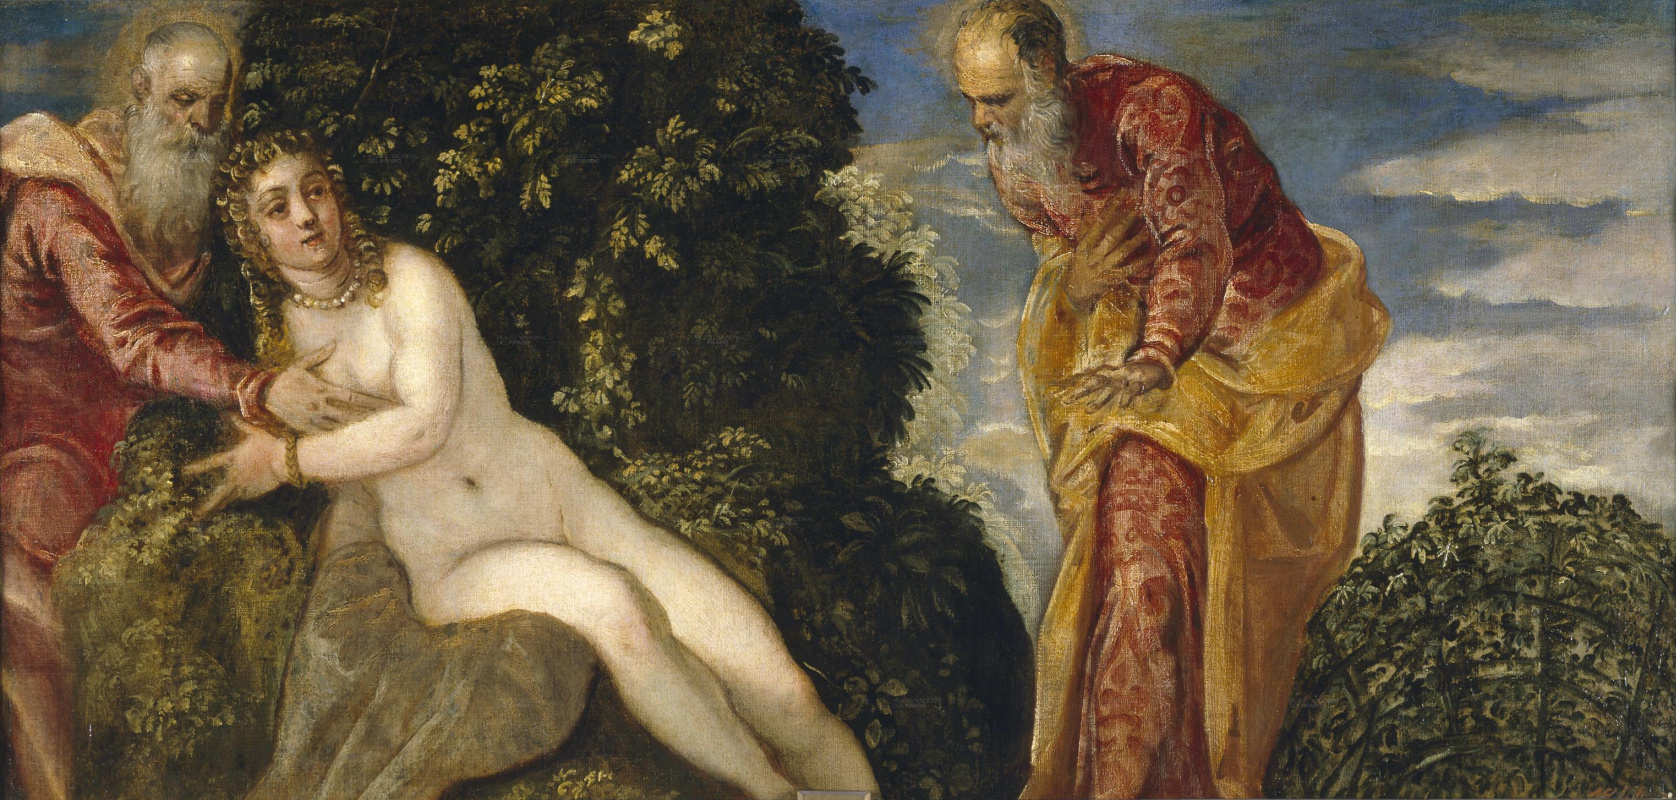 Jacopo (Robusti) Tintoretto. Susanna and the Elders